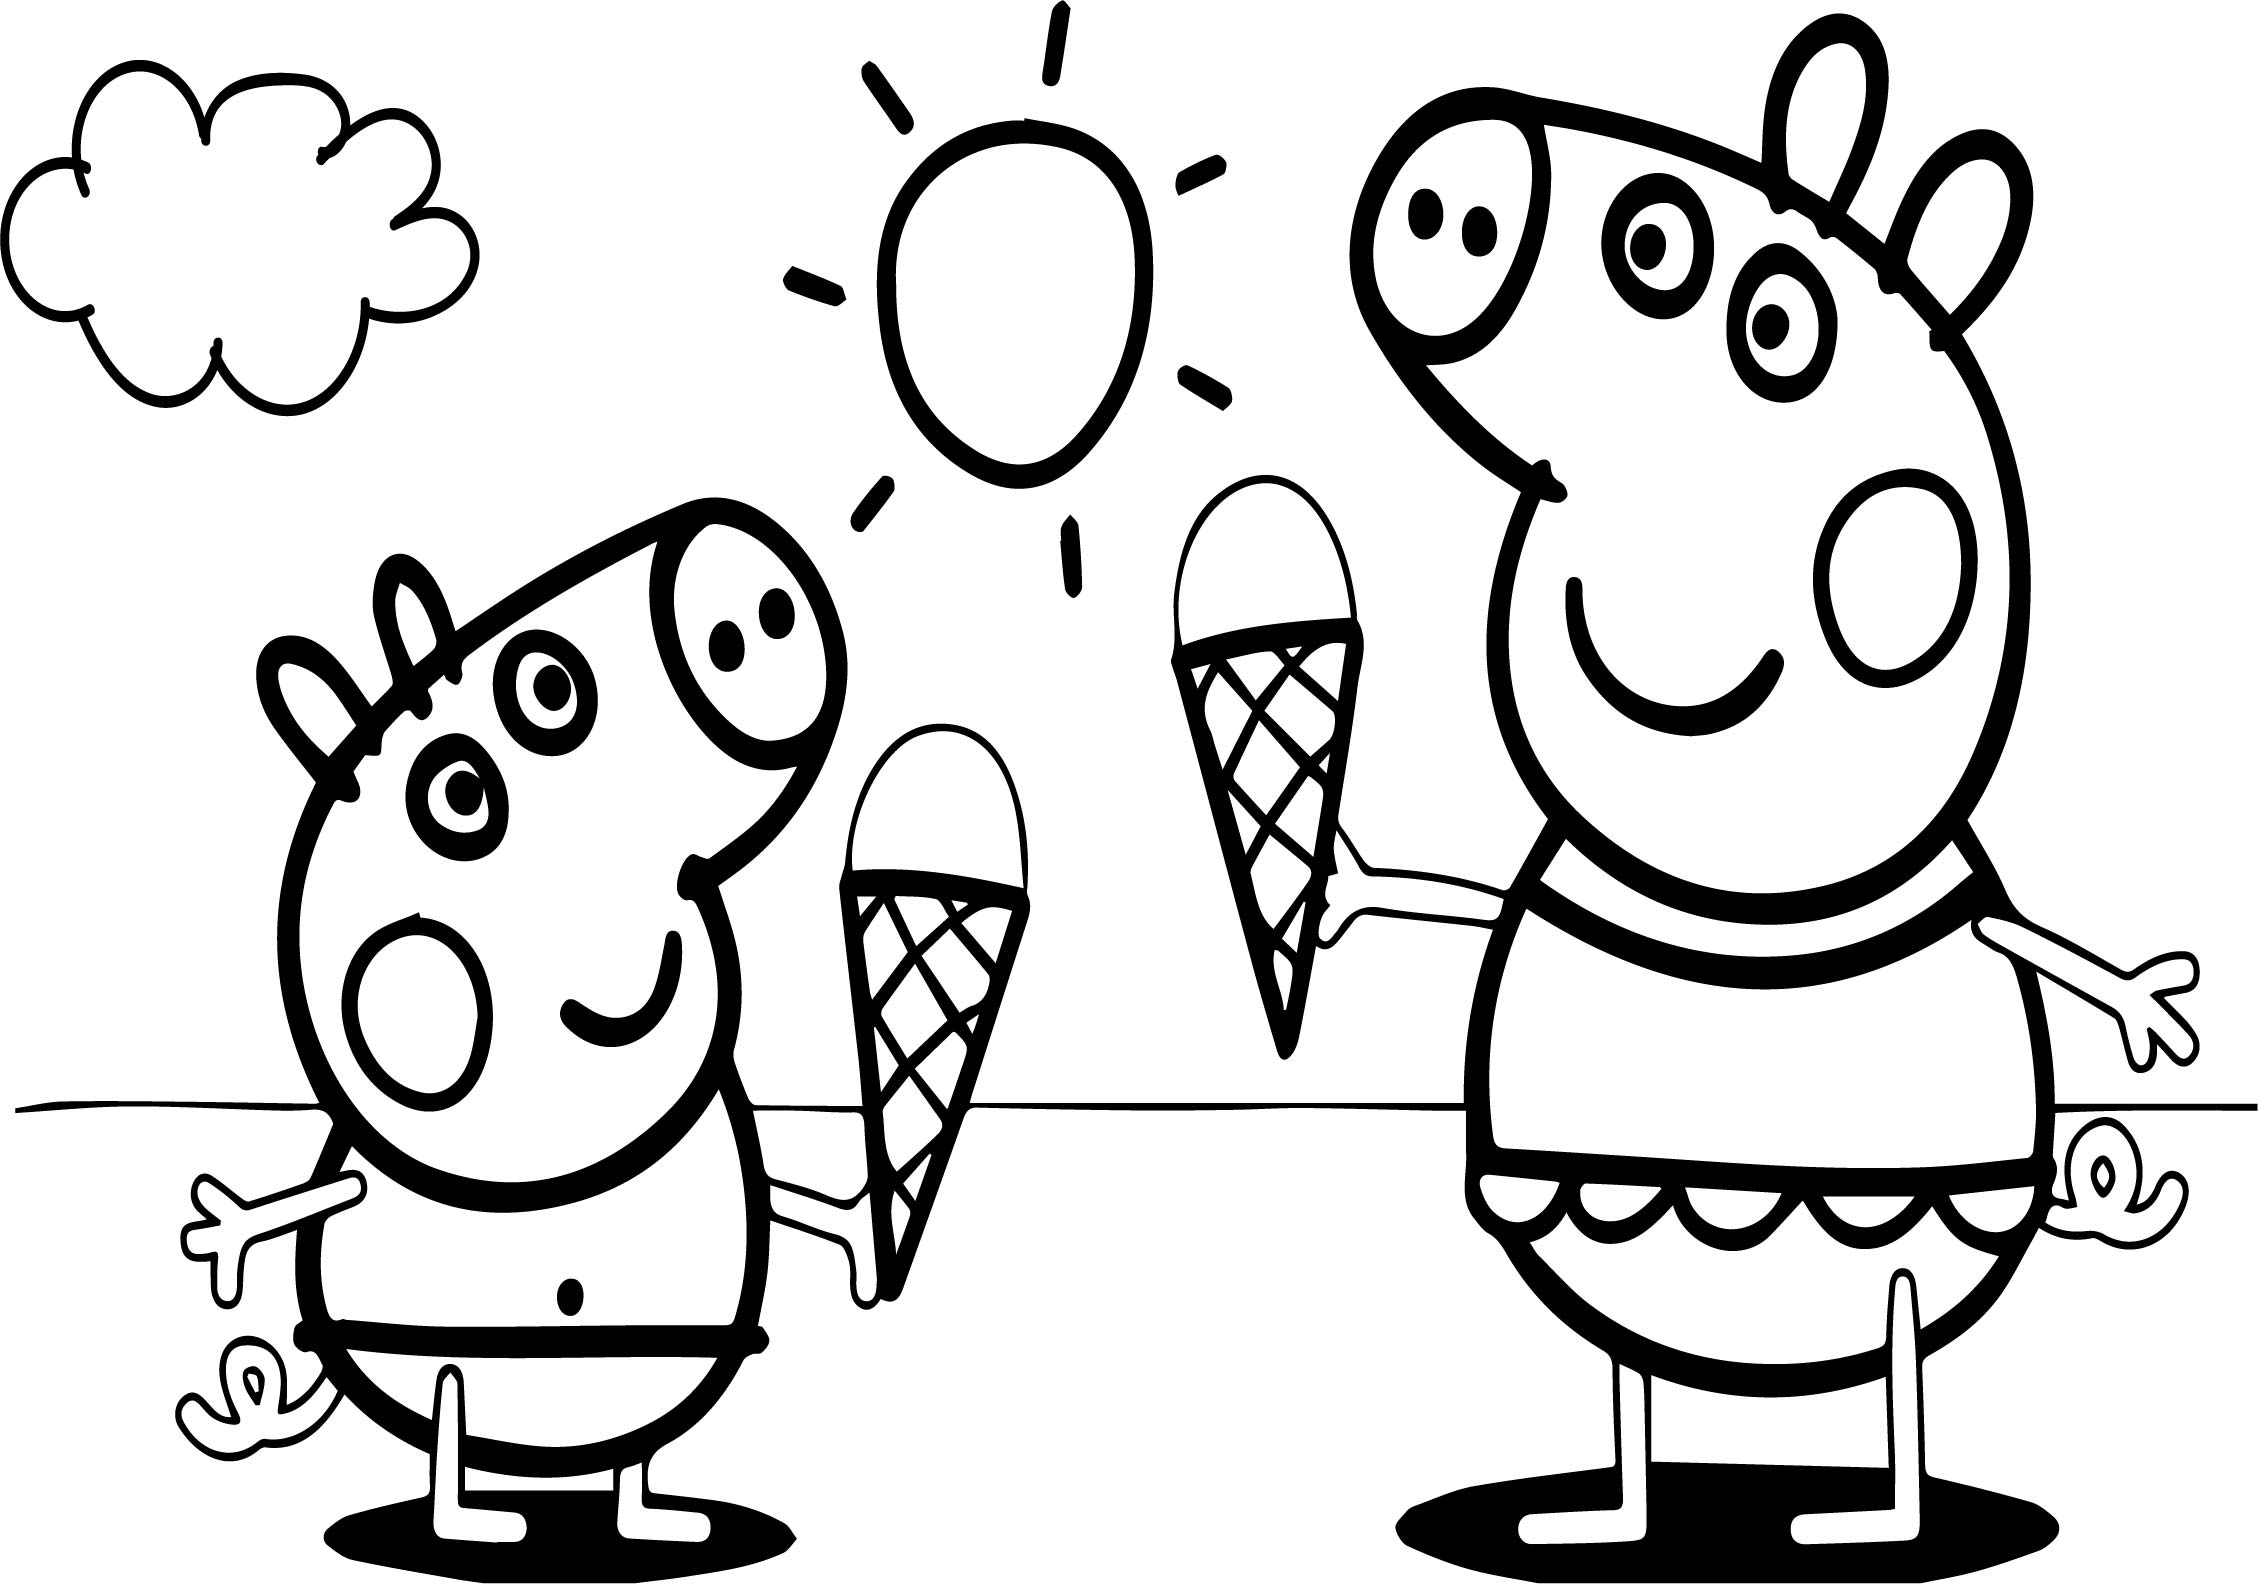 peppa pig colouring pages online peppa pig go swimming coloring page free printable pages online peppa pig colouring